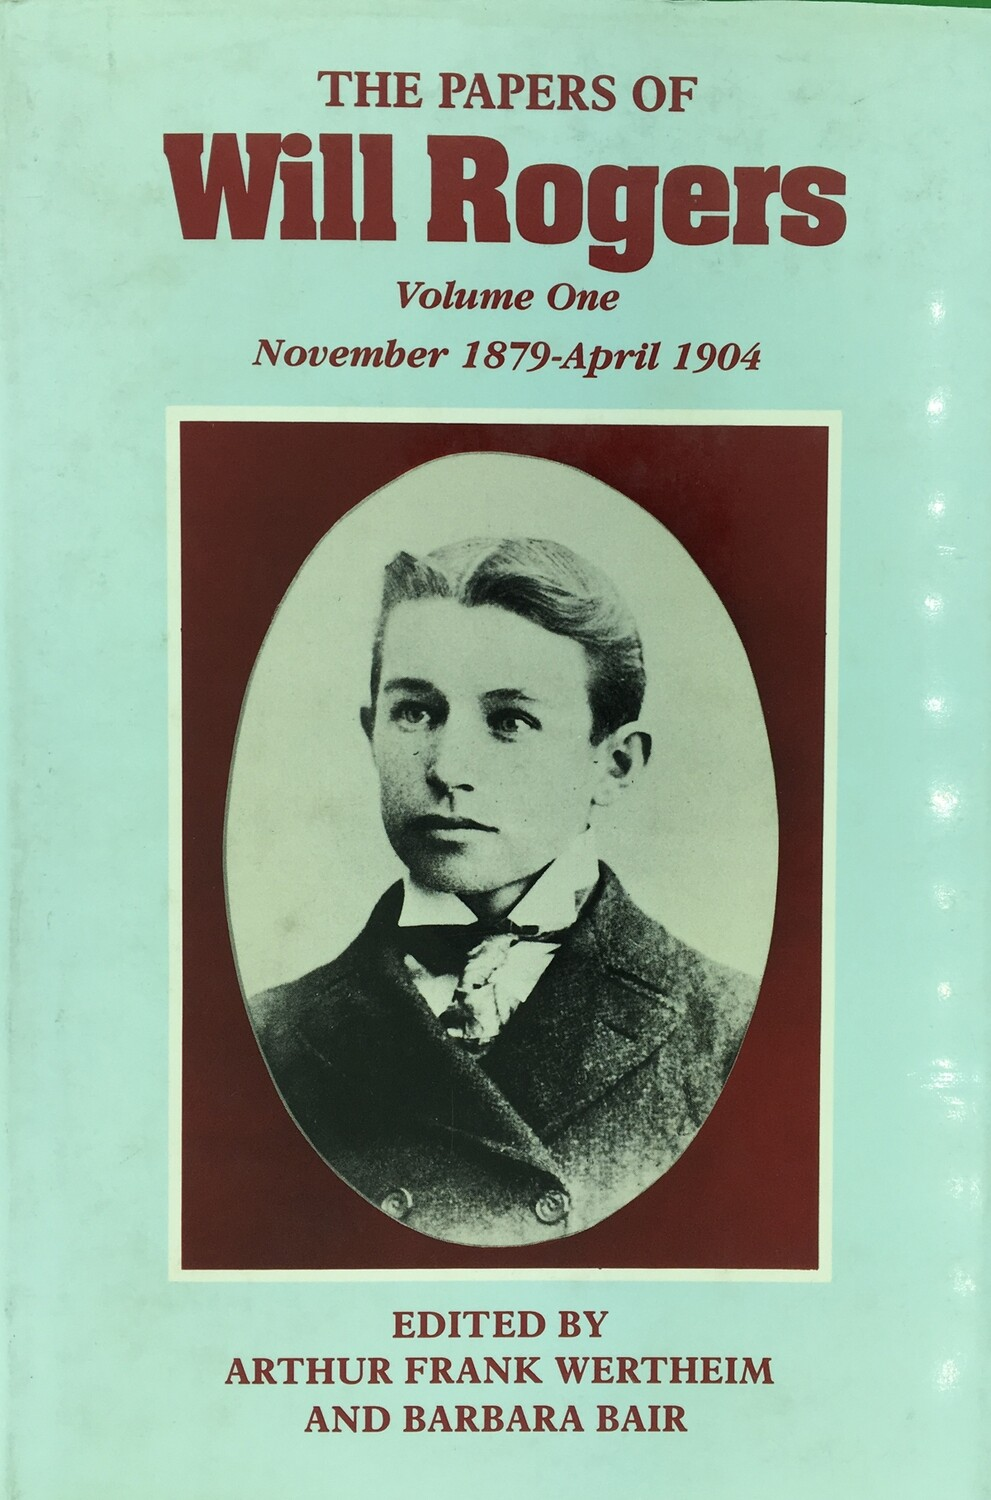 The papers of Will Rogers Volume 1